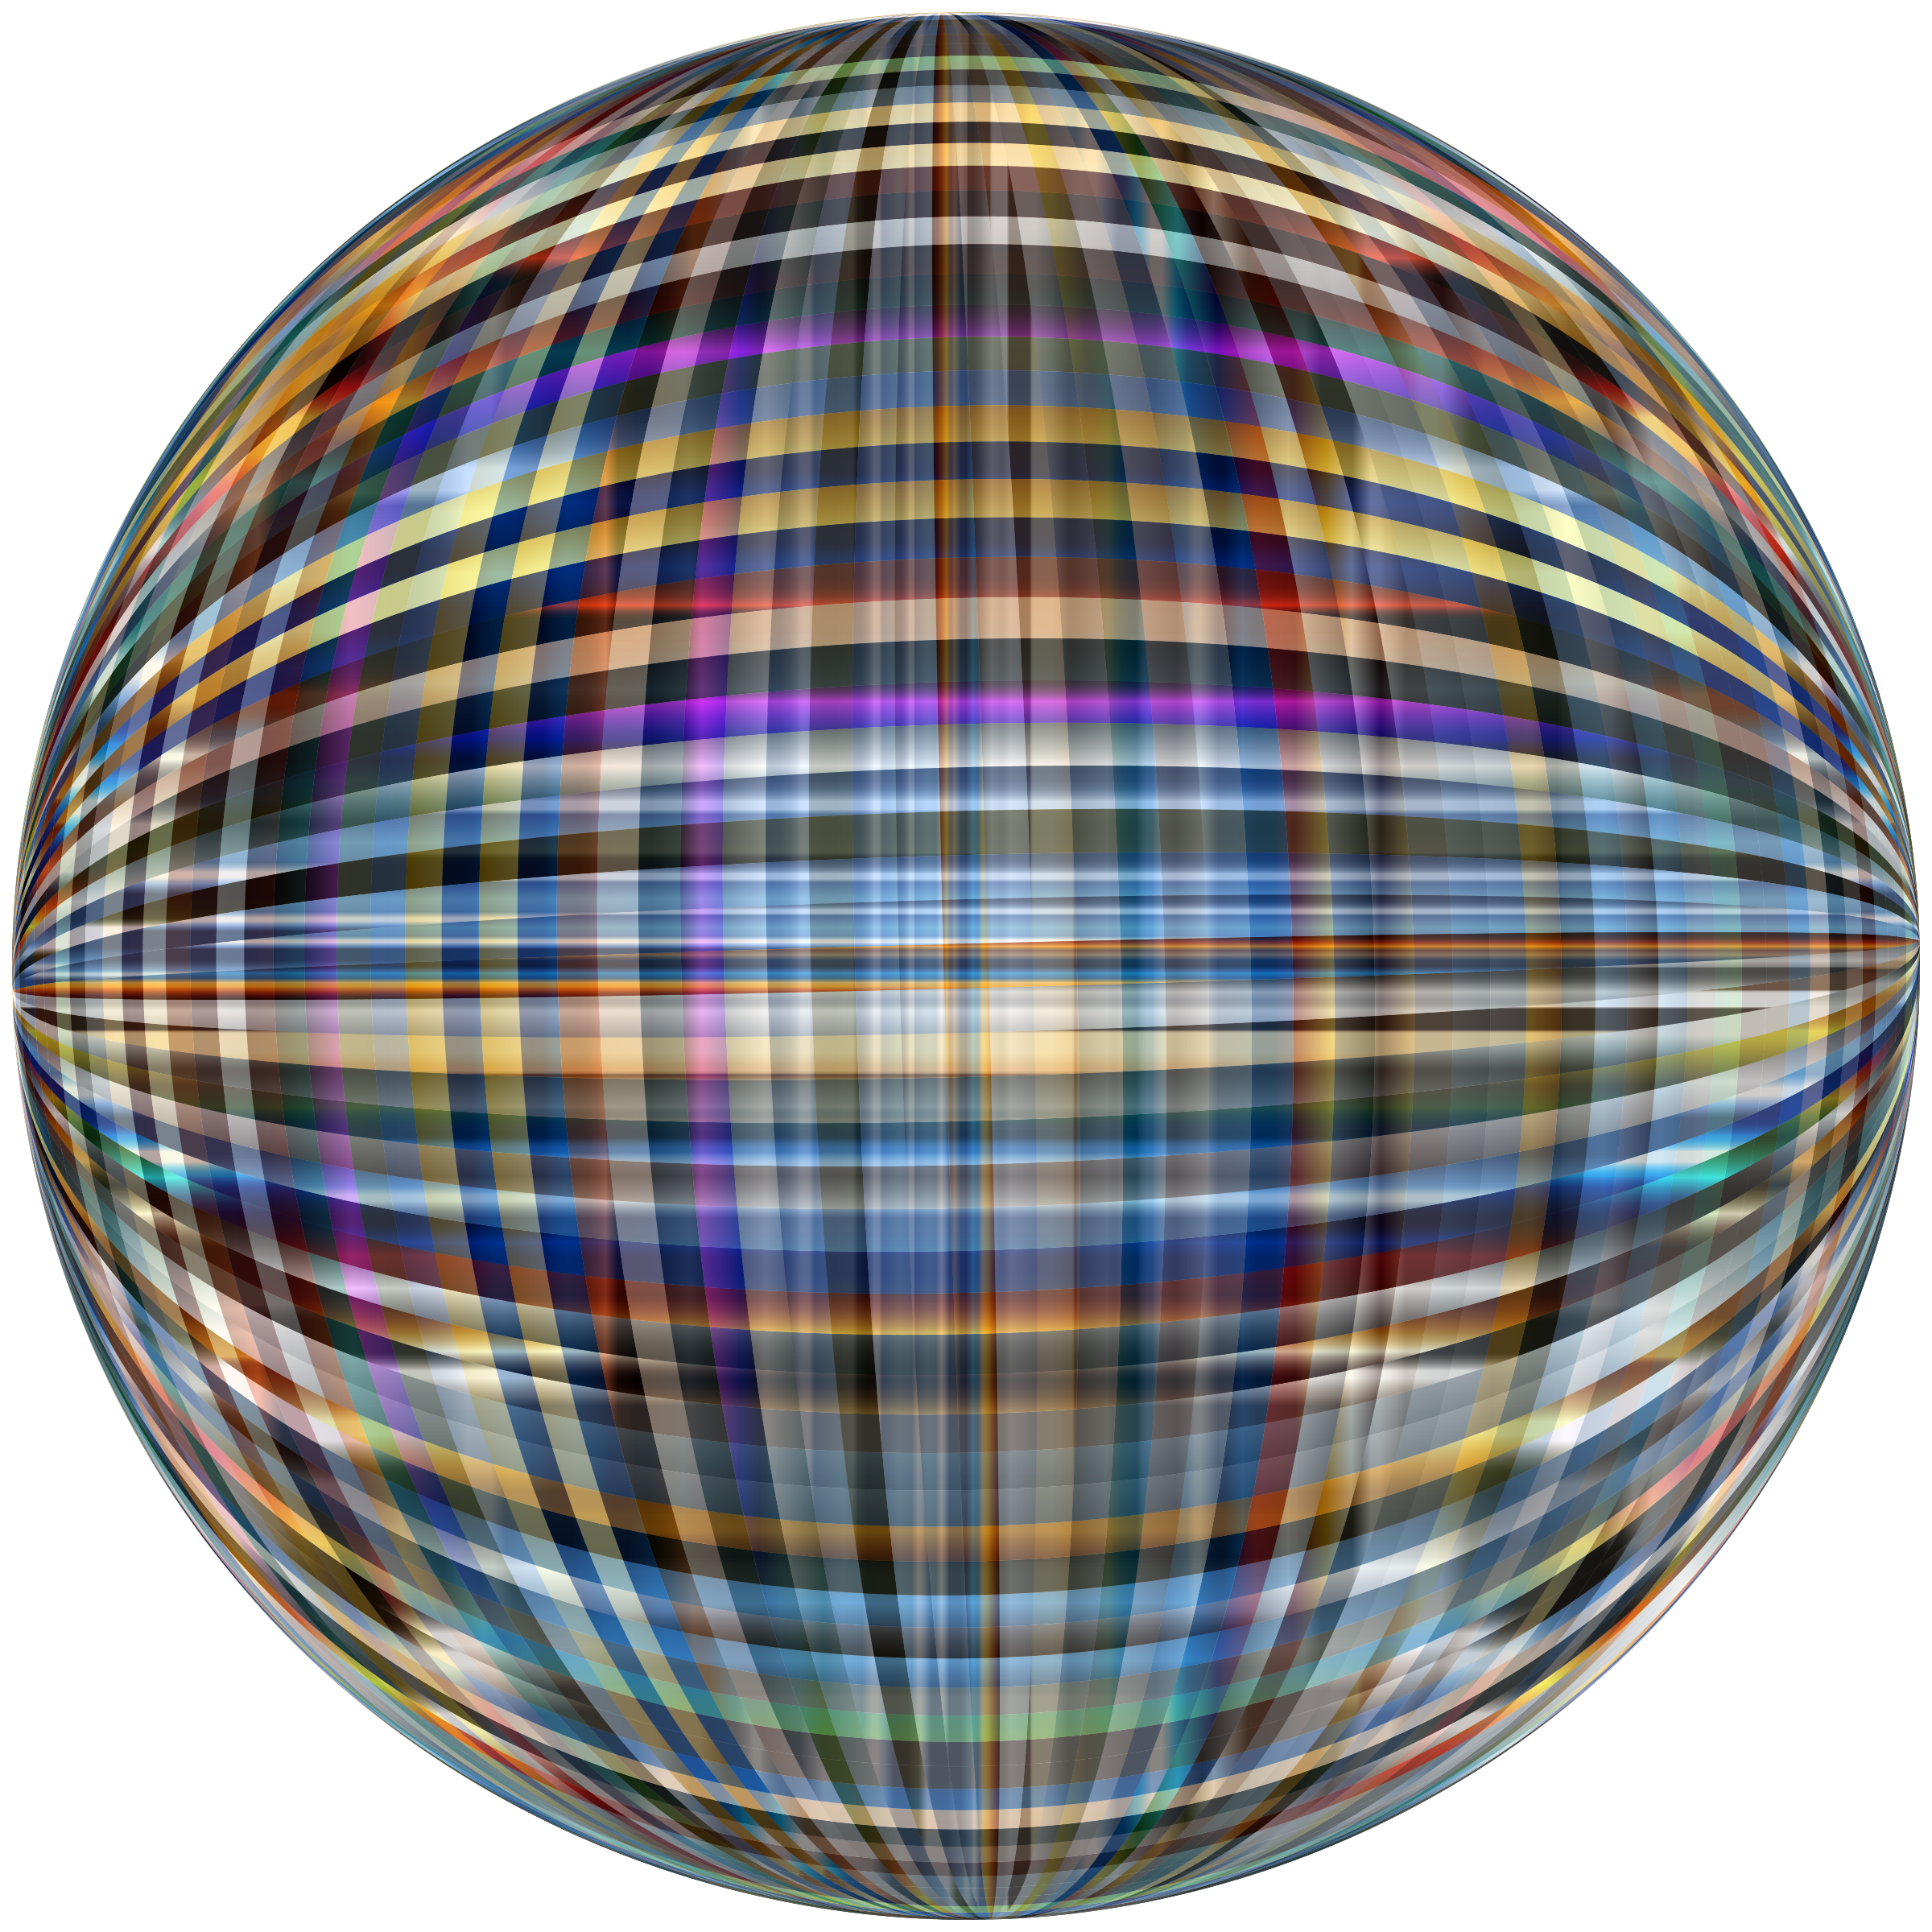 vector royalty free stock Orbs transparent free on. Marbles clipart orb.